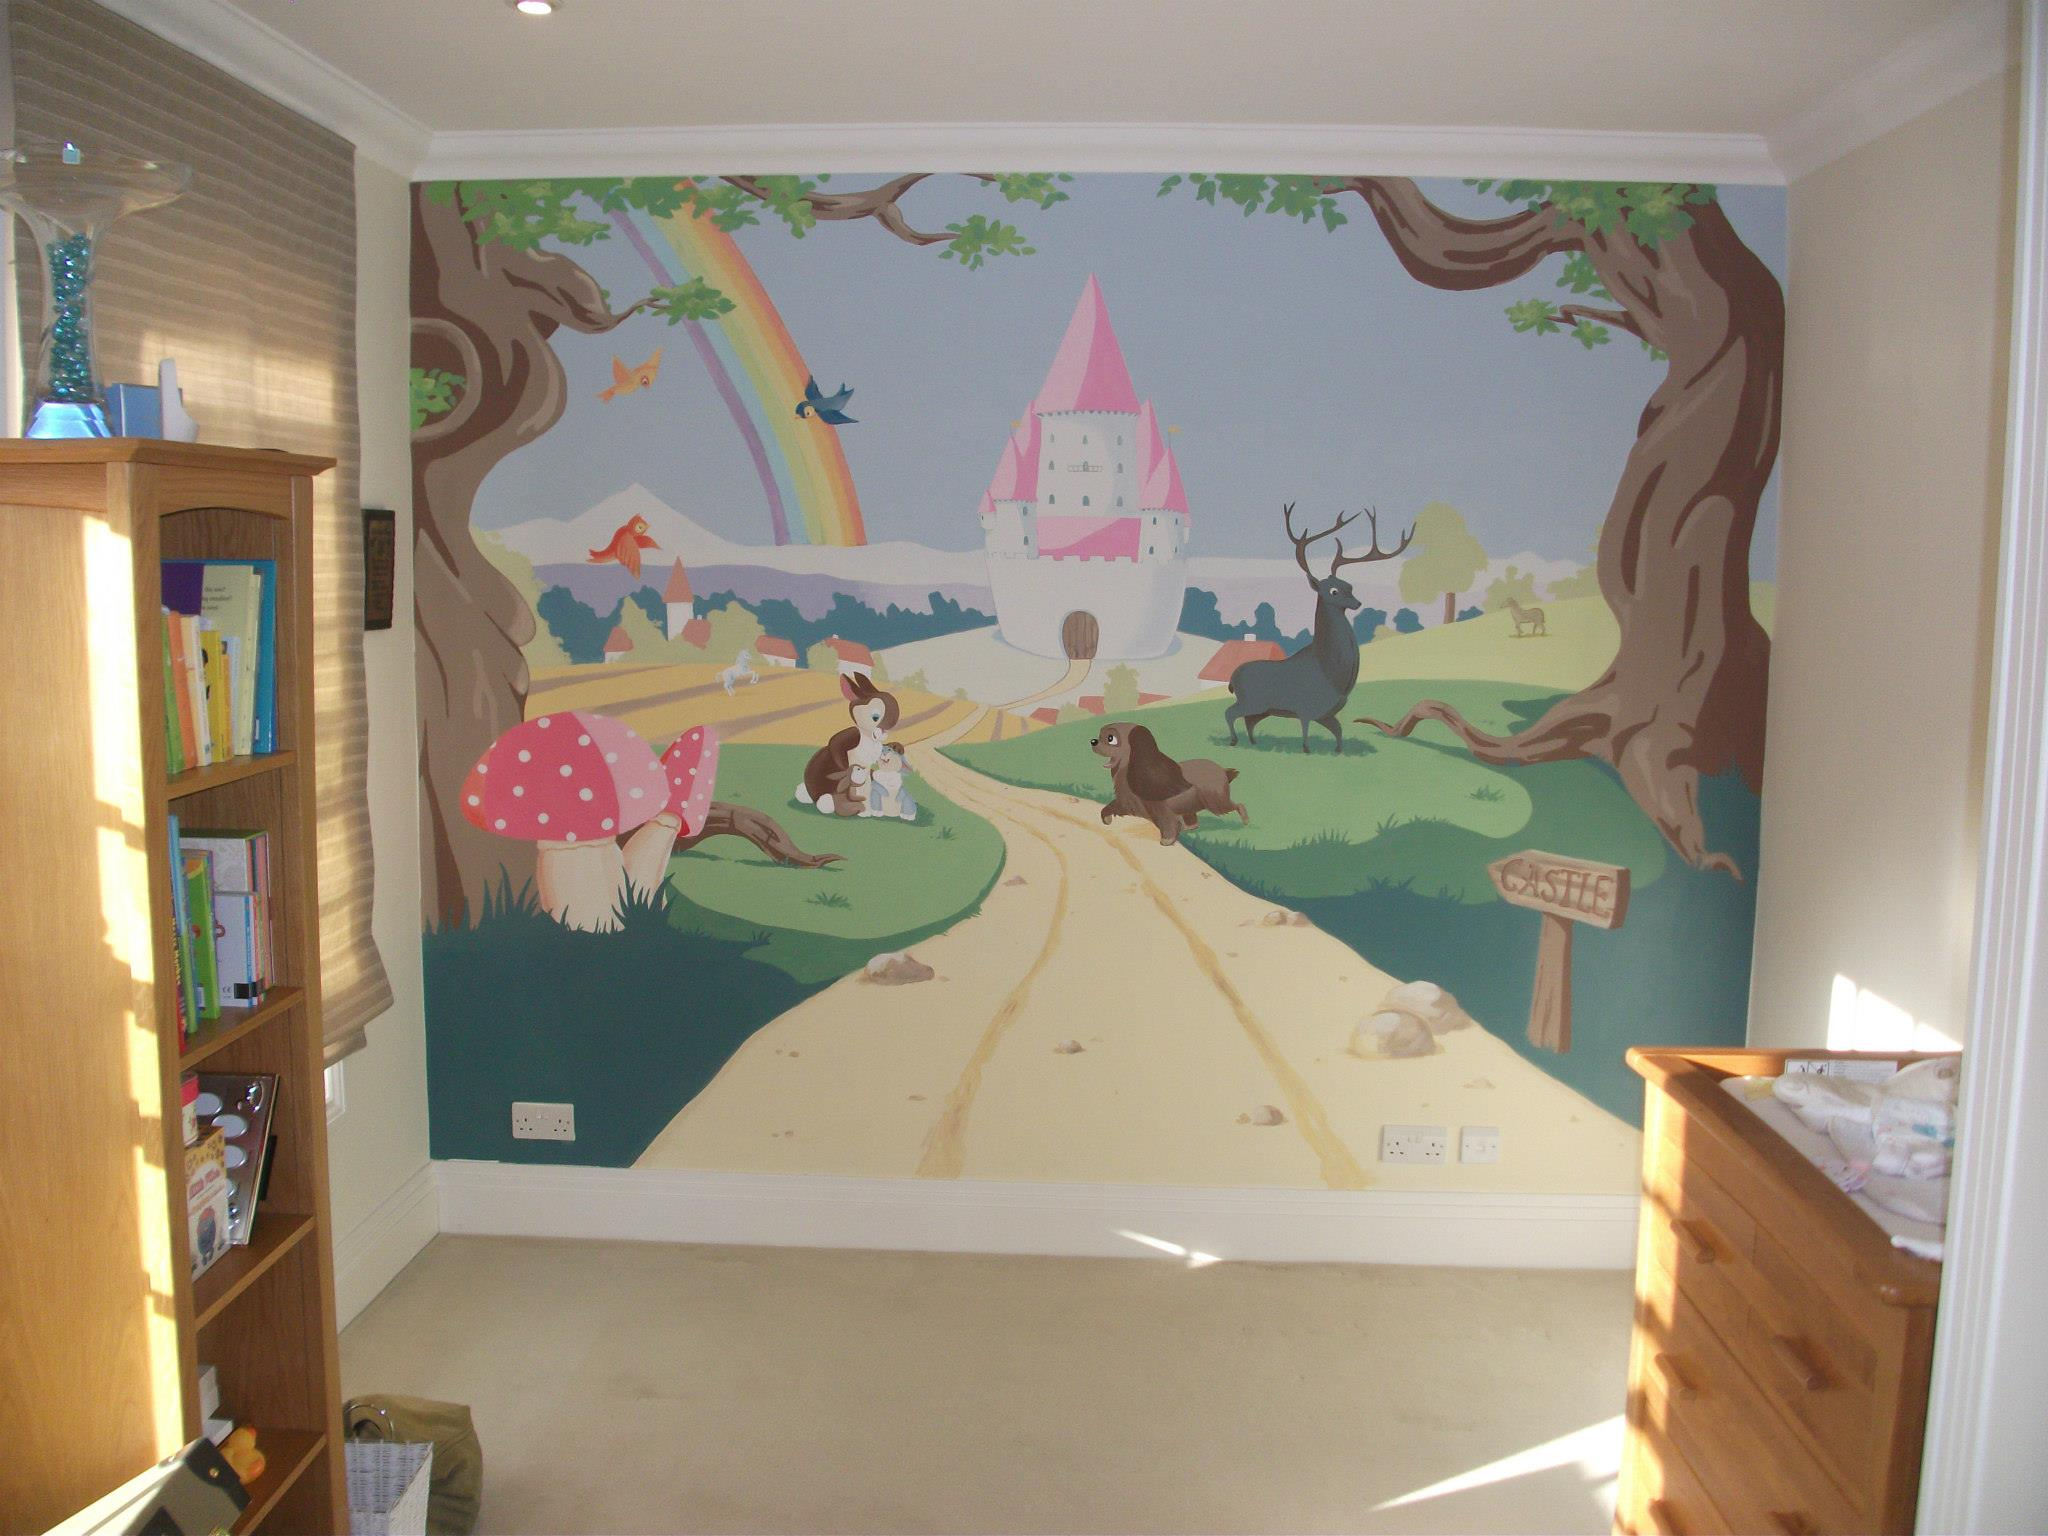 top tips for painting a mural in your child s bedroom my baba lightly sketch out the design on the wall with a pencil you can rub out any mistakes simply and easily if your design is quite complicated then take a